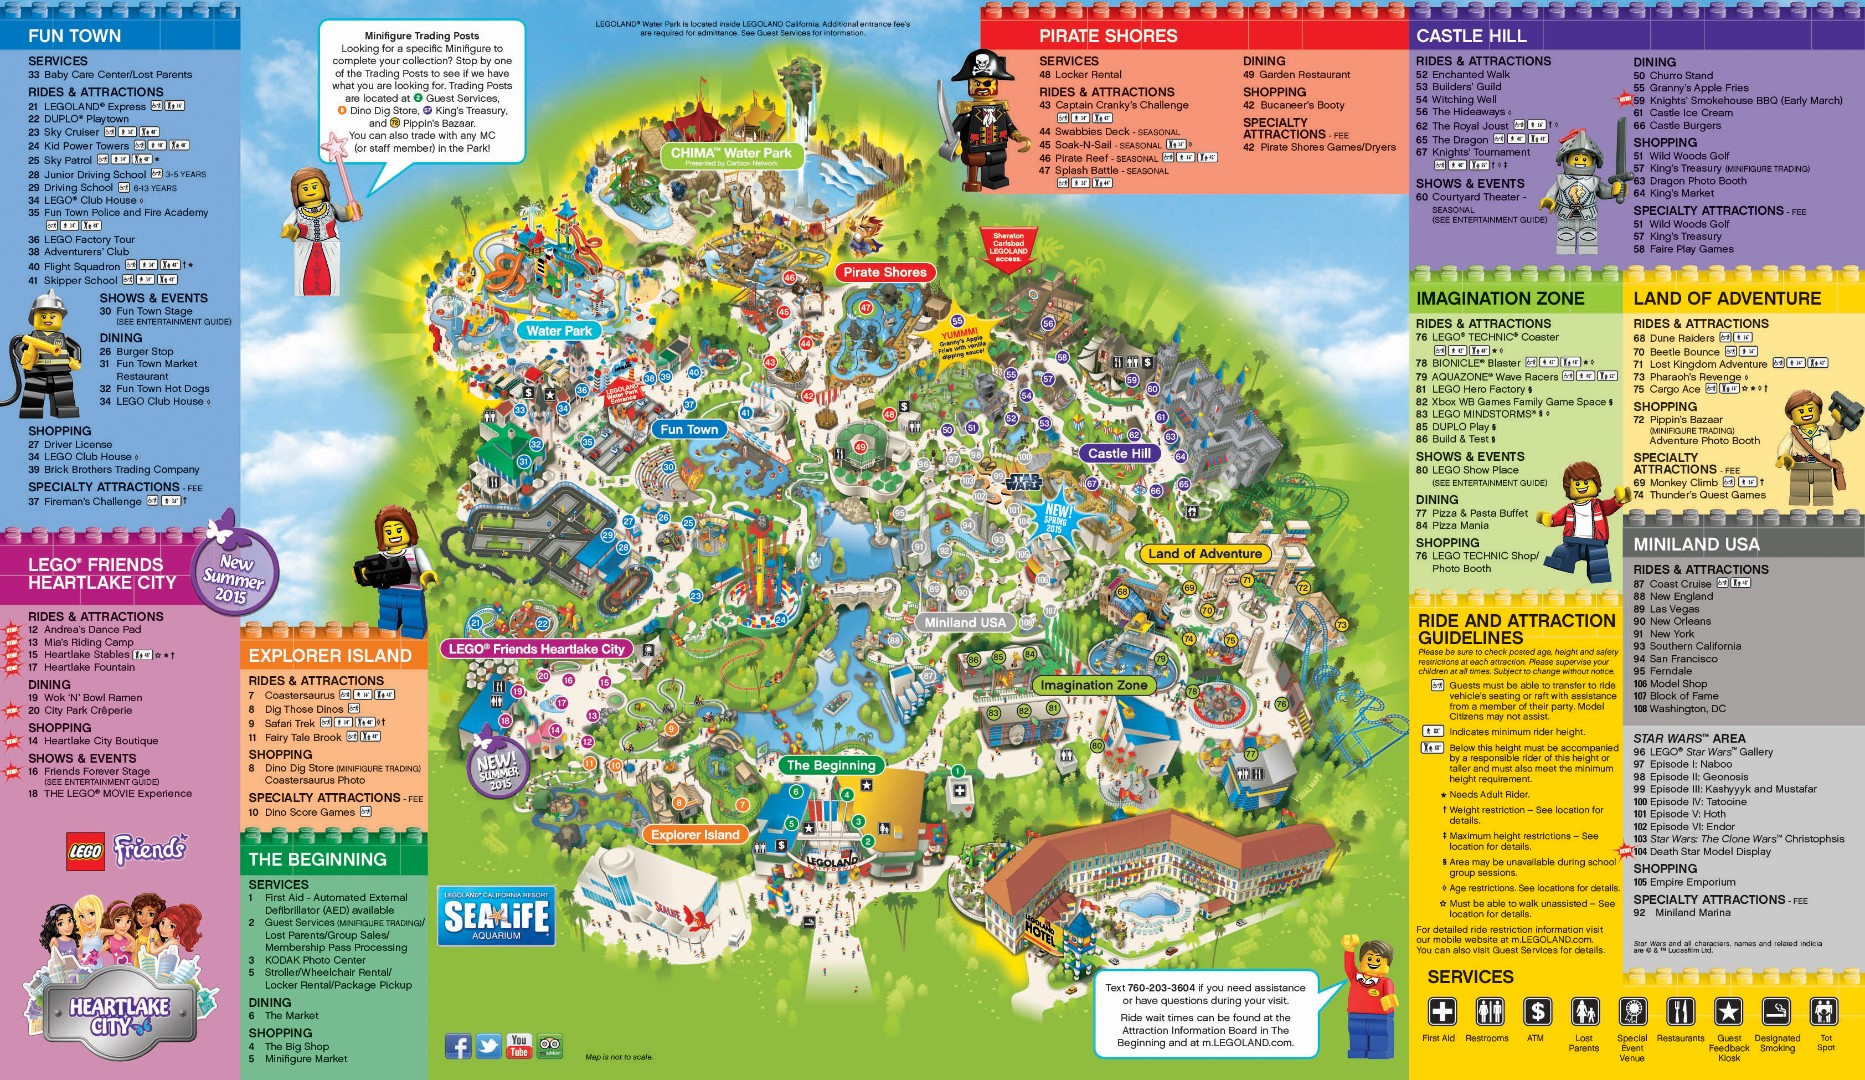 Universal Studios California Park Map Inspirational Legoland - Universal Studios Map California 2018